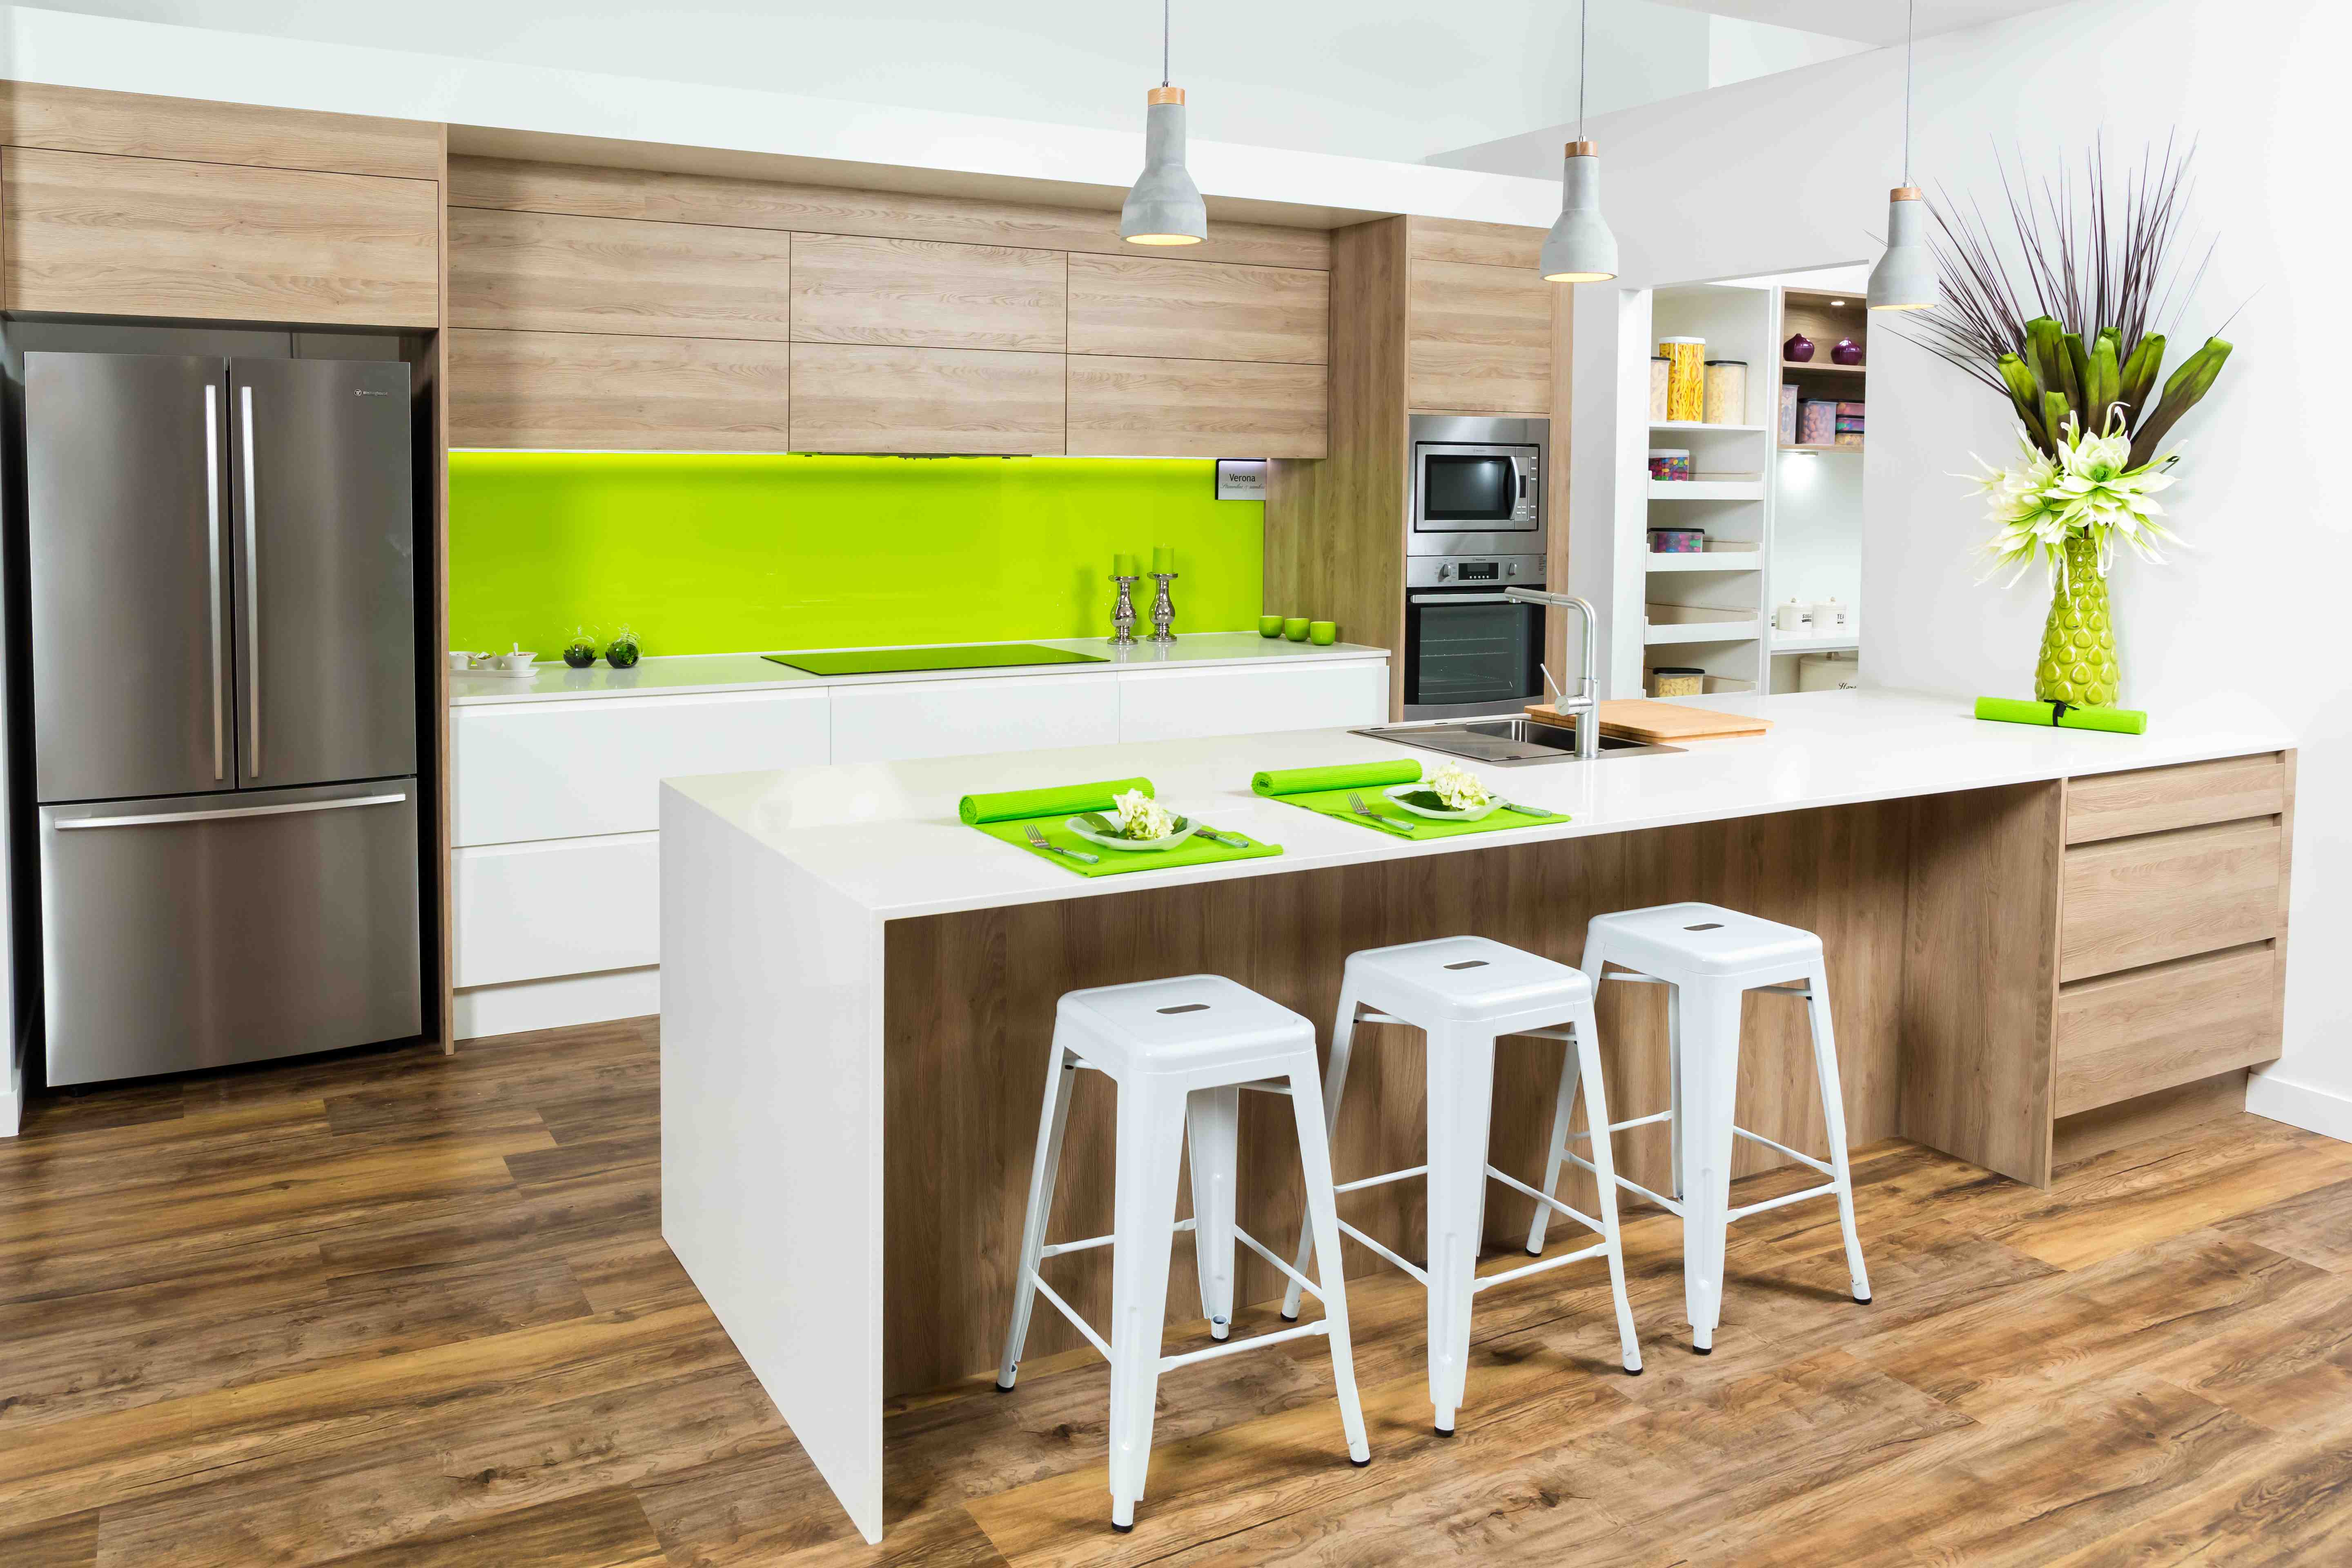 Timber Look Kitchen Cabinets - Kitchen Connection